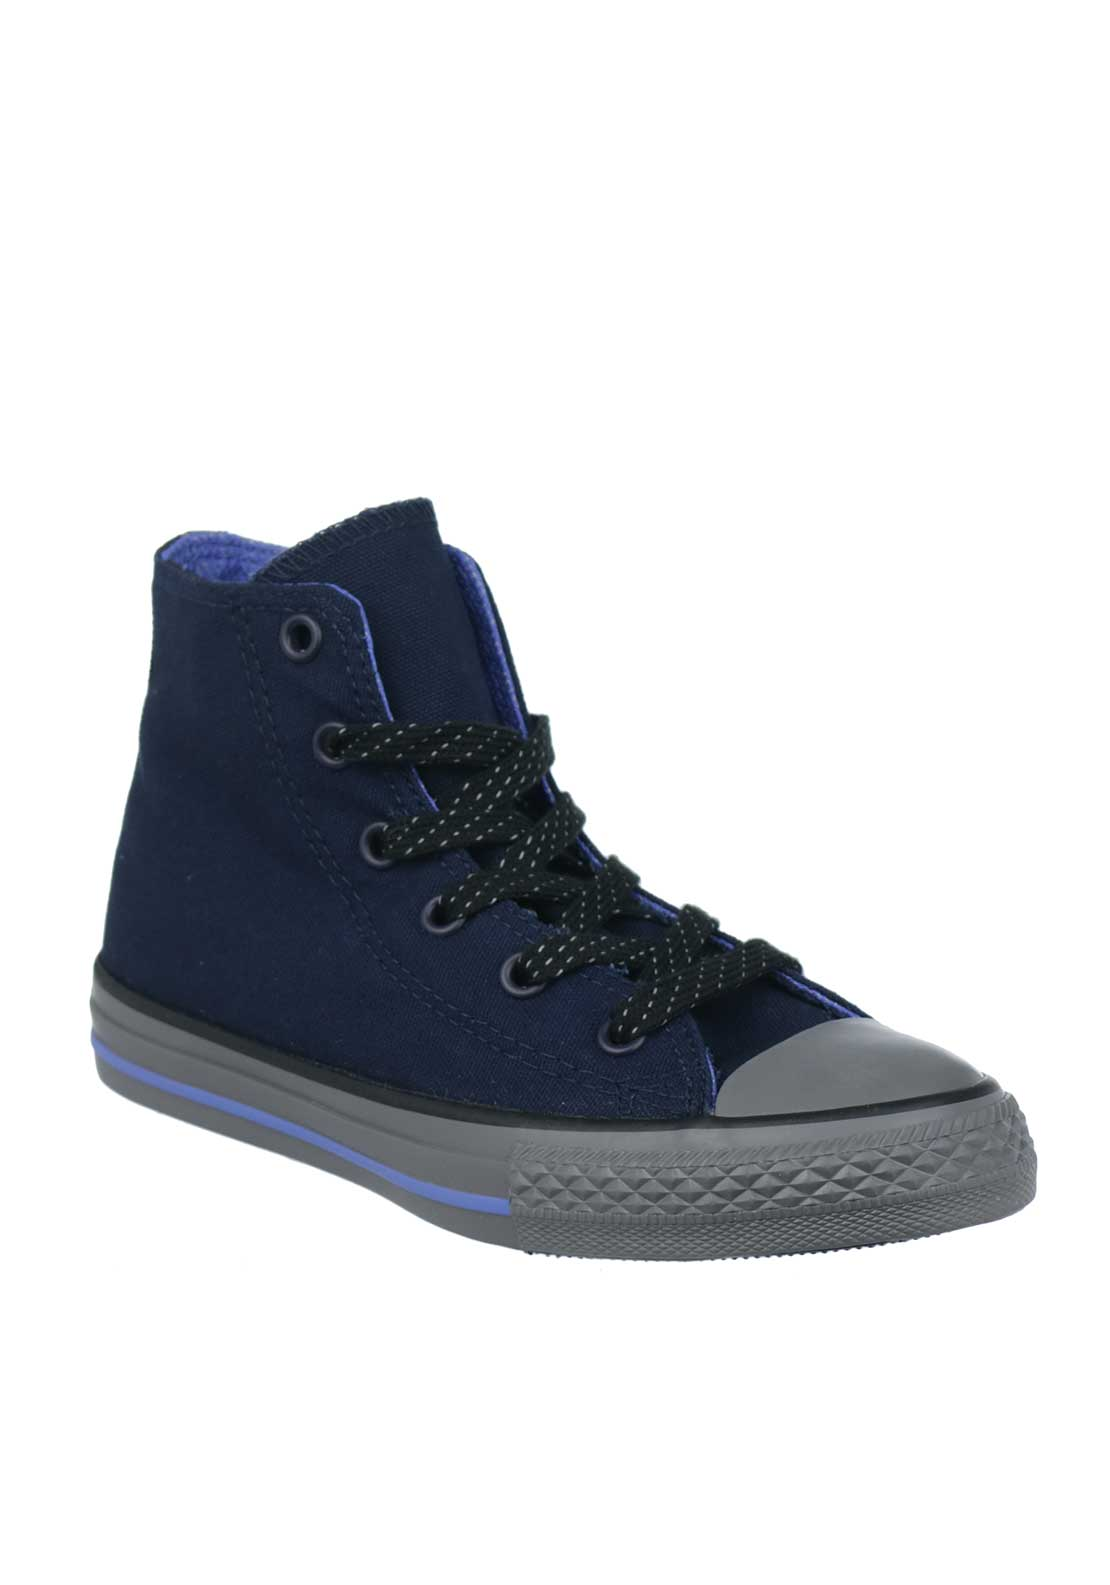 Converse Boys Hi Top Trainers, Navy